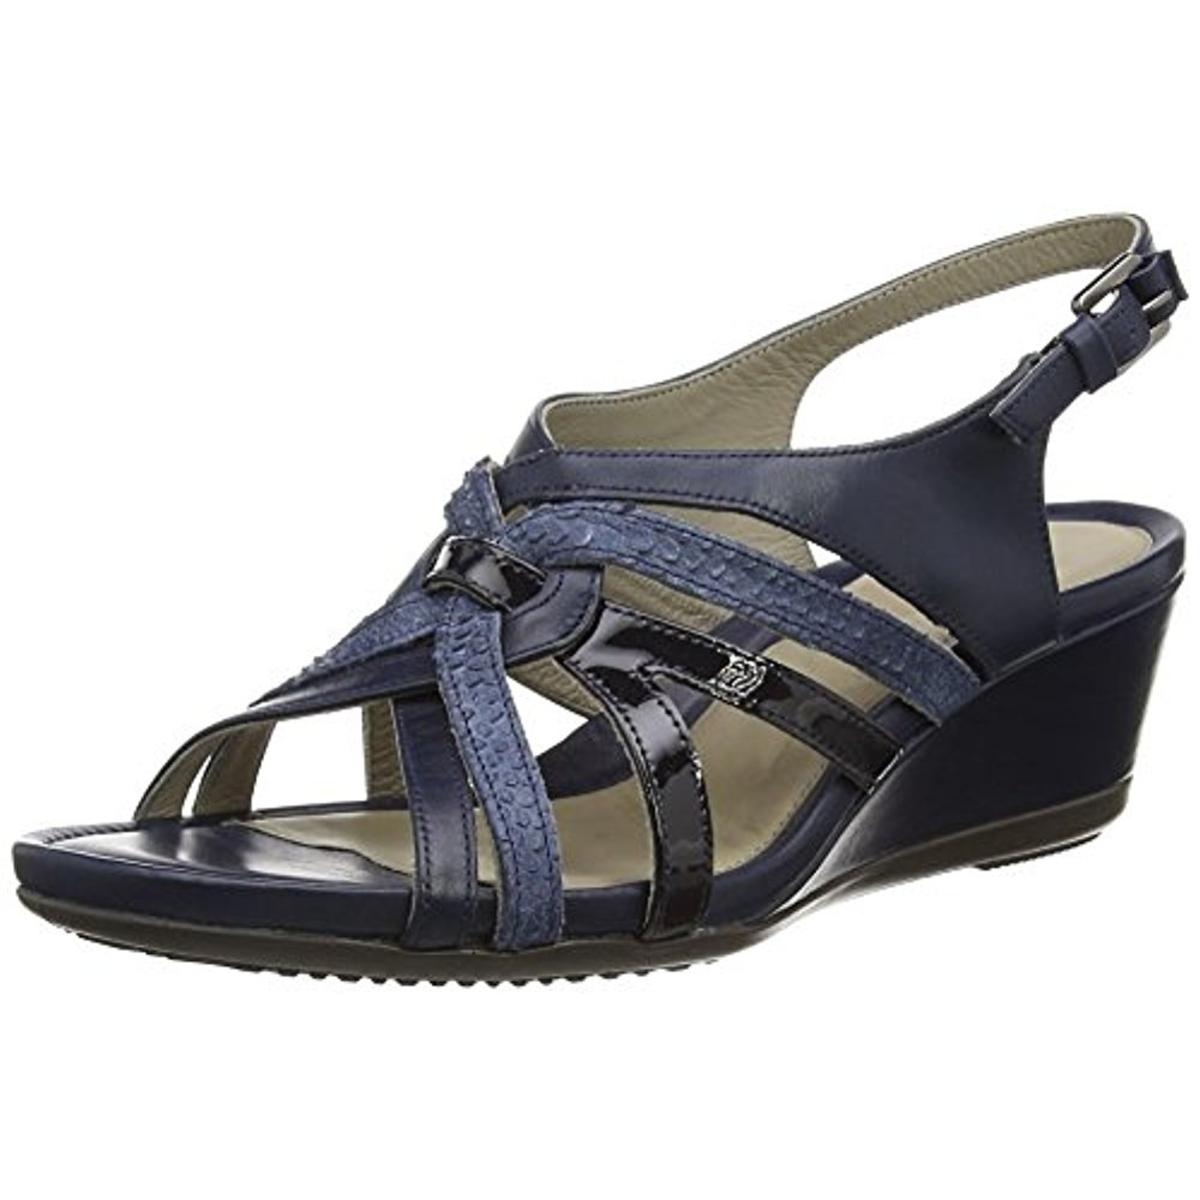 ECCO Womens Leather Slingback Wedge Sandals by Ecco